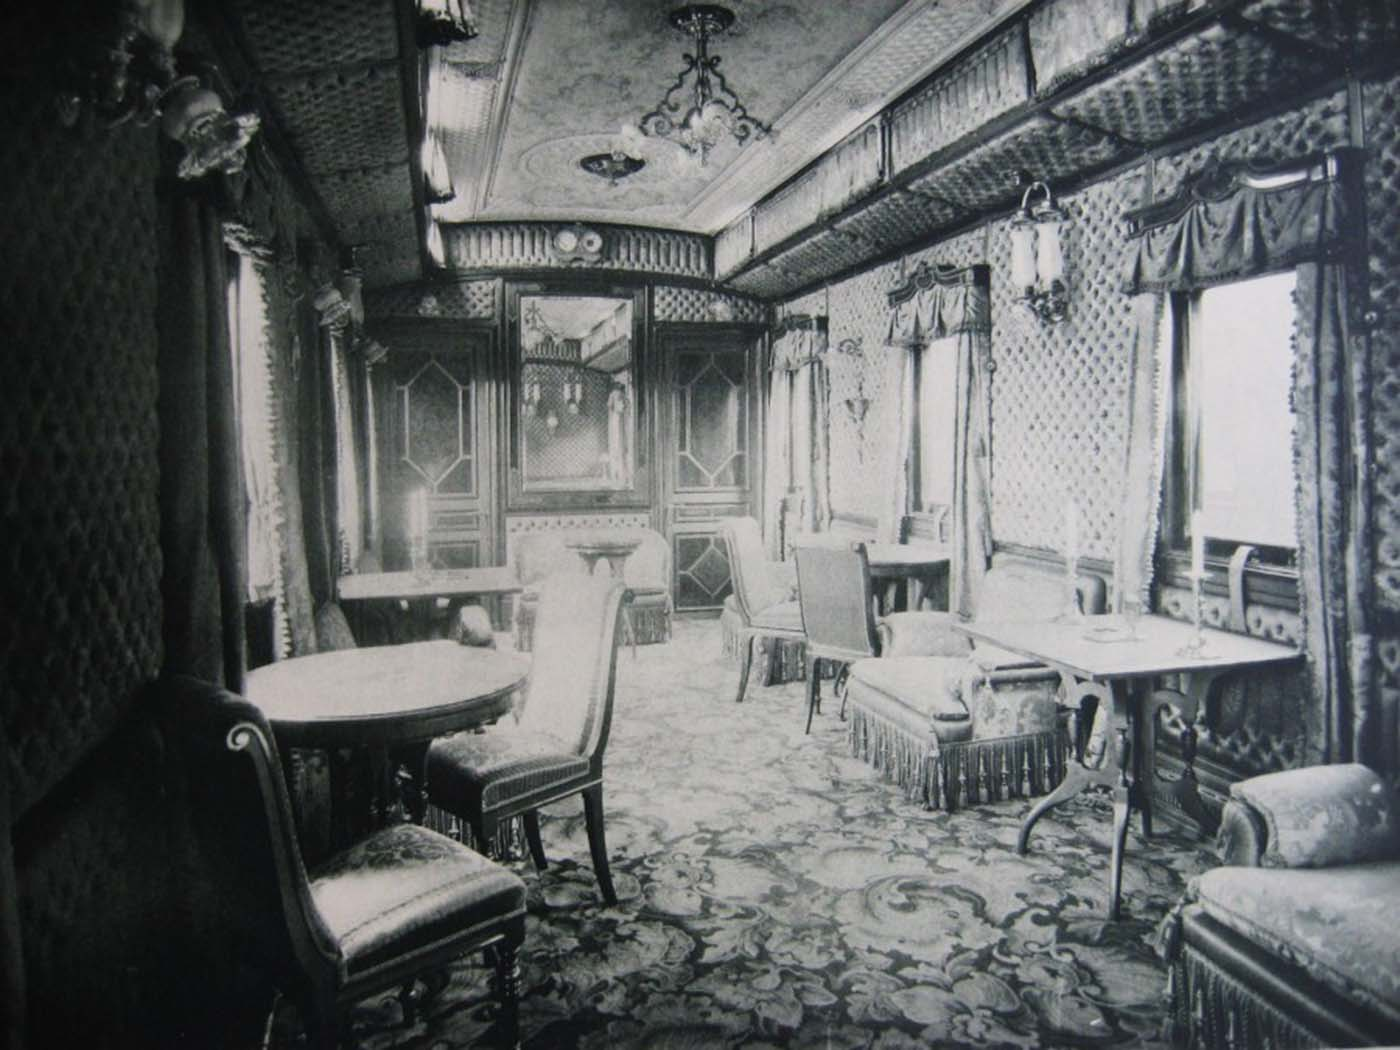 The saloon had soft mahogany furniture in the Art Nouveau style. The walls, sofas, armchairs and chairs were lined in striped pistachio curtains; a plush carpet on the floor had a checked design.